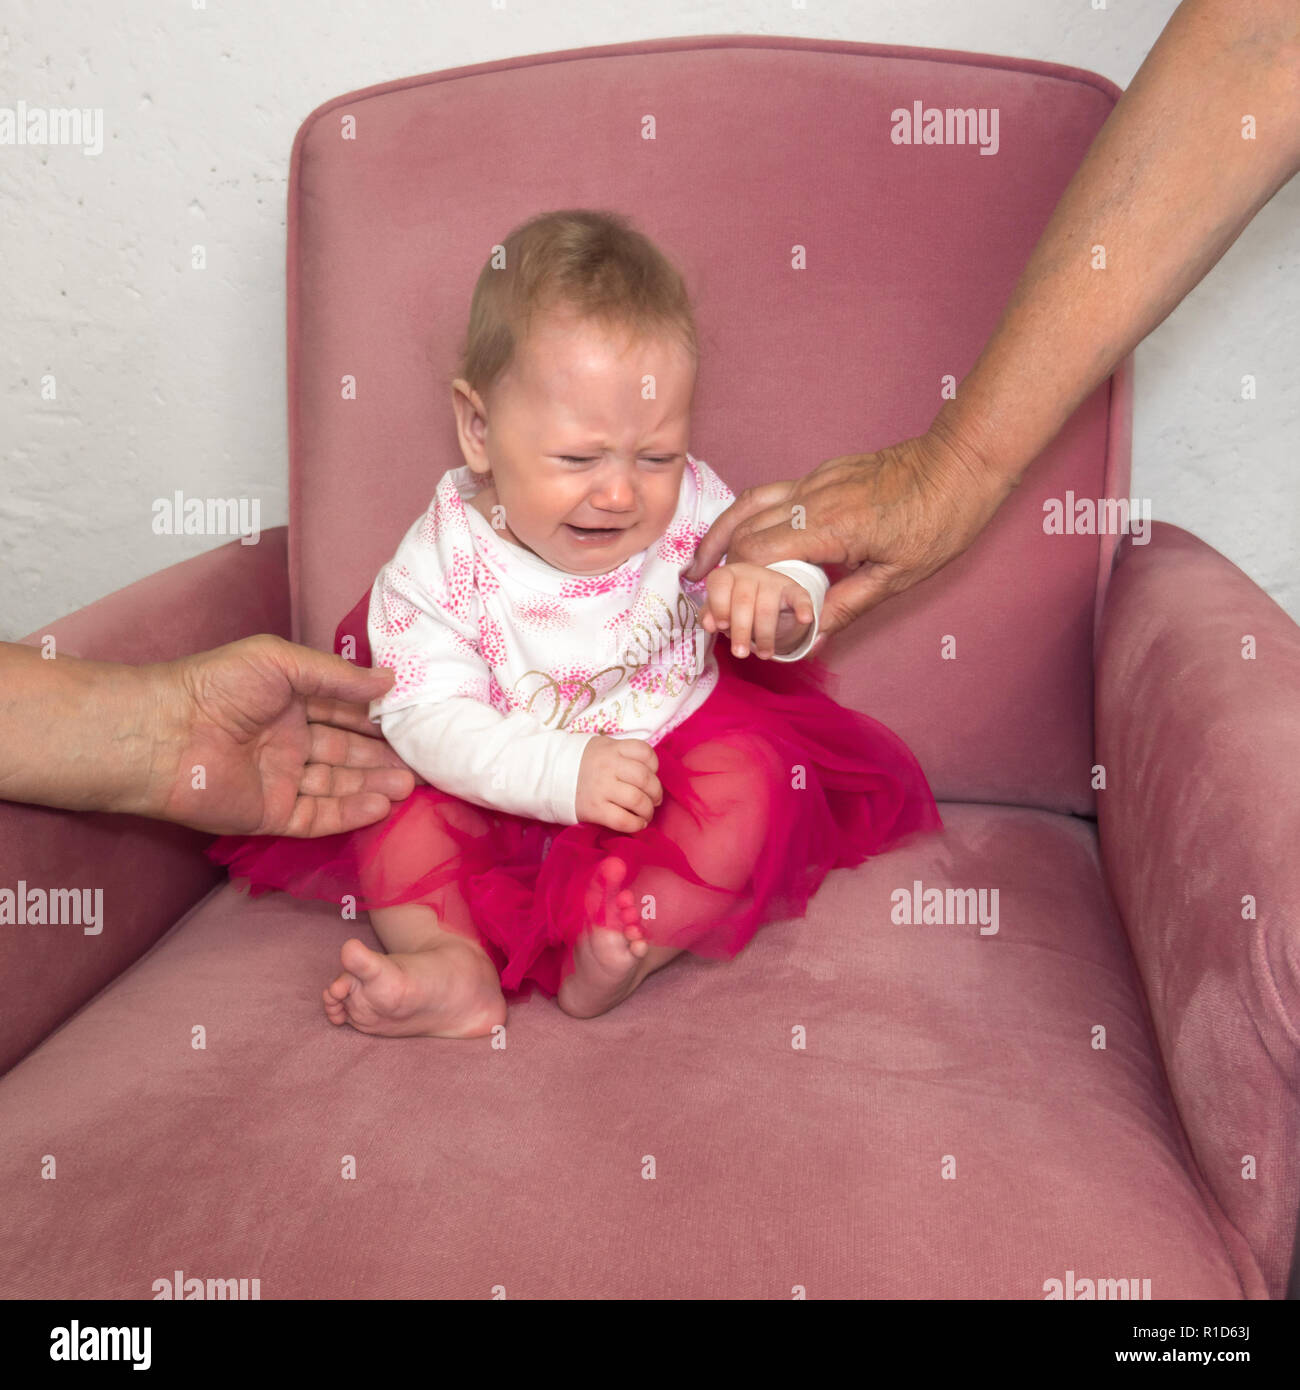 Crying baby sitting in the chair. Hands of grandmother holding child sitting in the chair. Negative child emotion. Facial expression. Portrait of dressed up girl sitting in the chair. - Stock Image